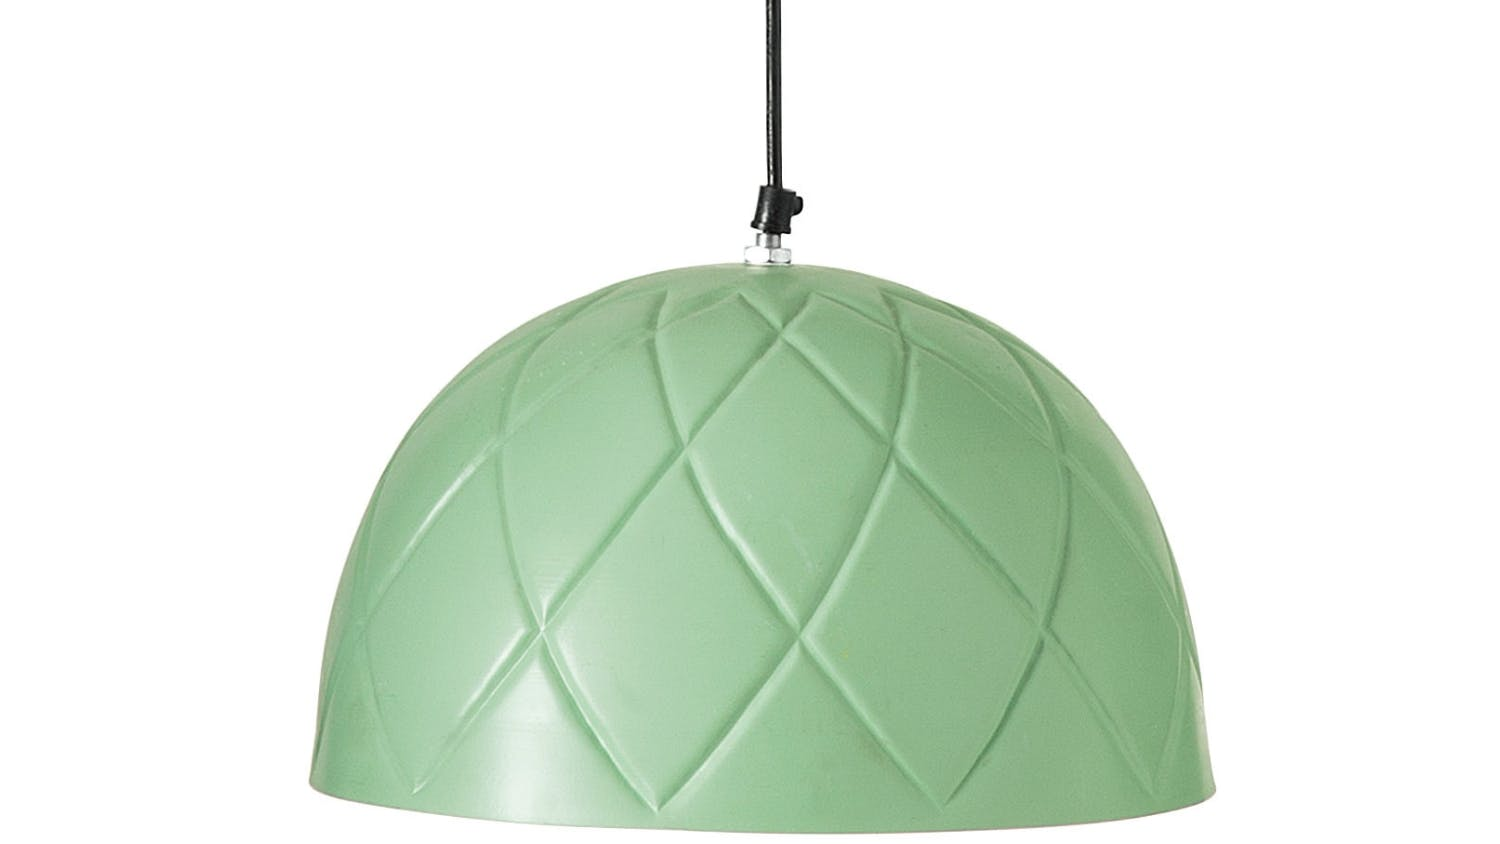 white silver online dome interiors products alfresco pendant elawdomewhtsil